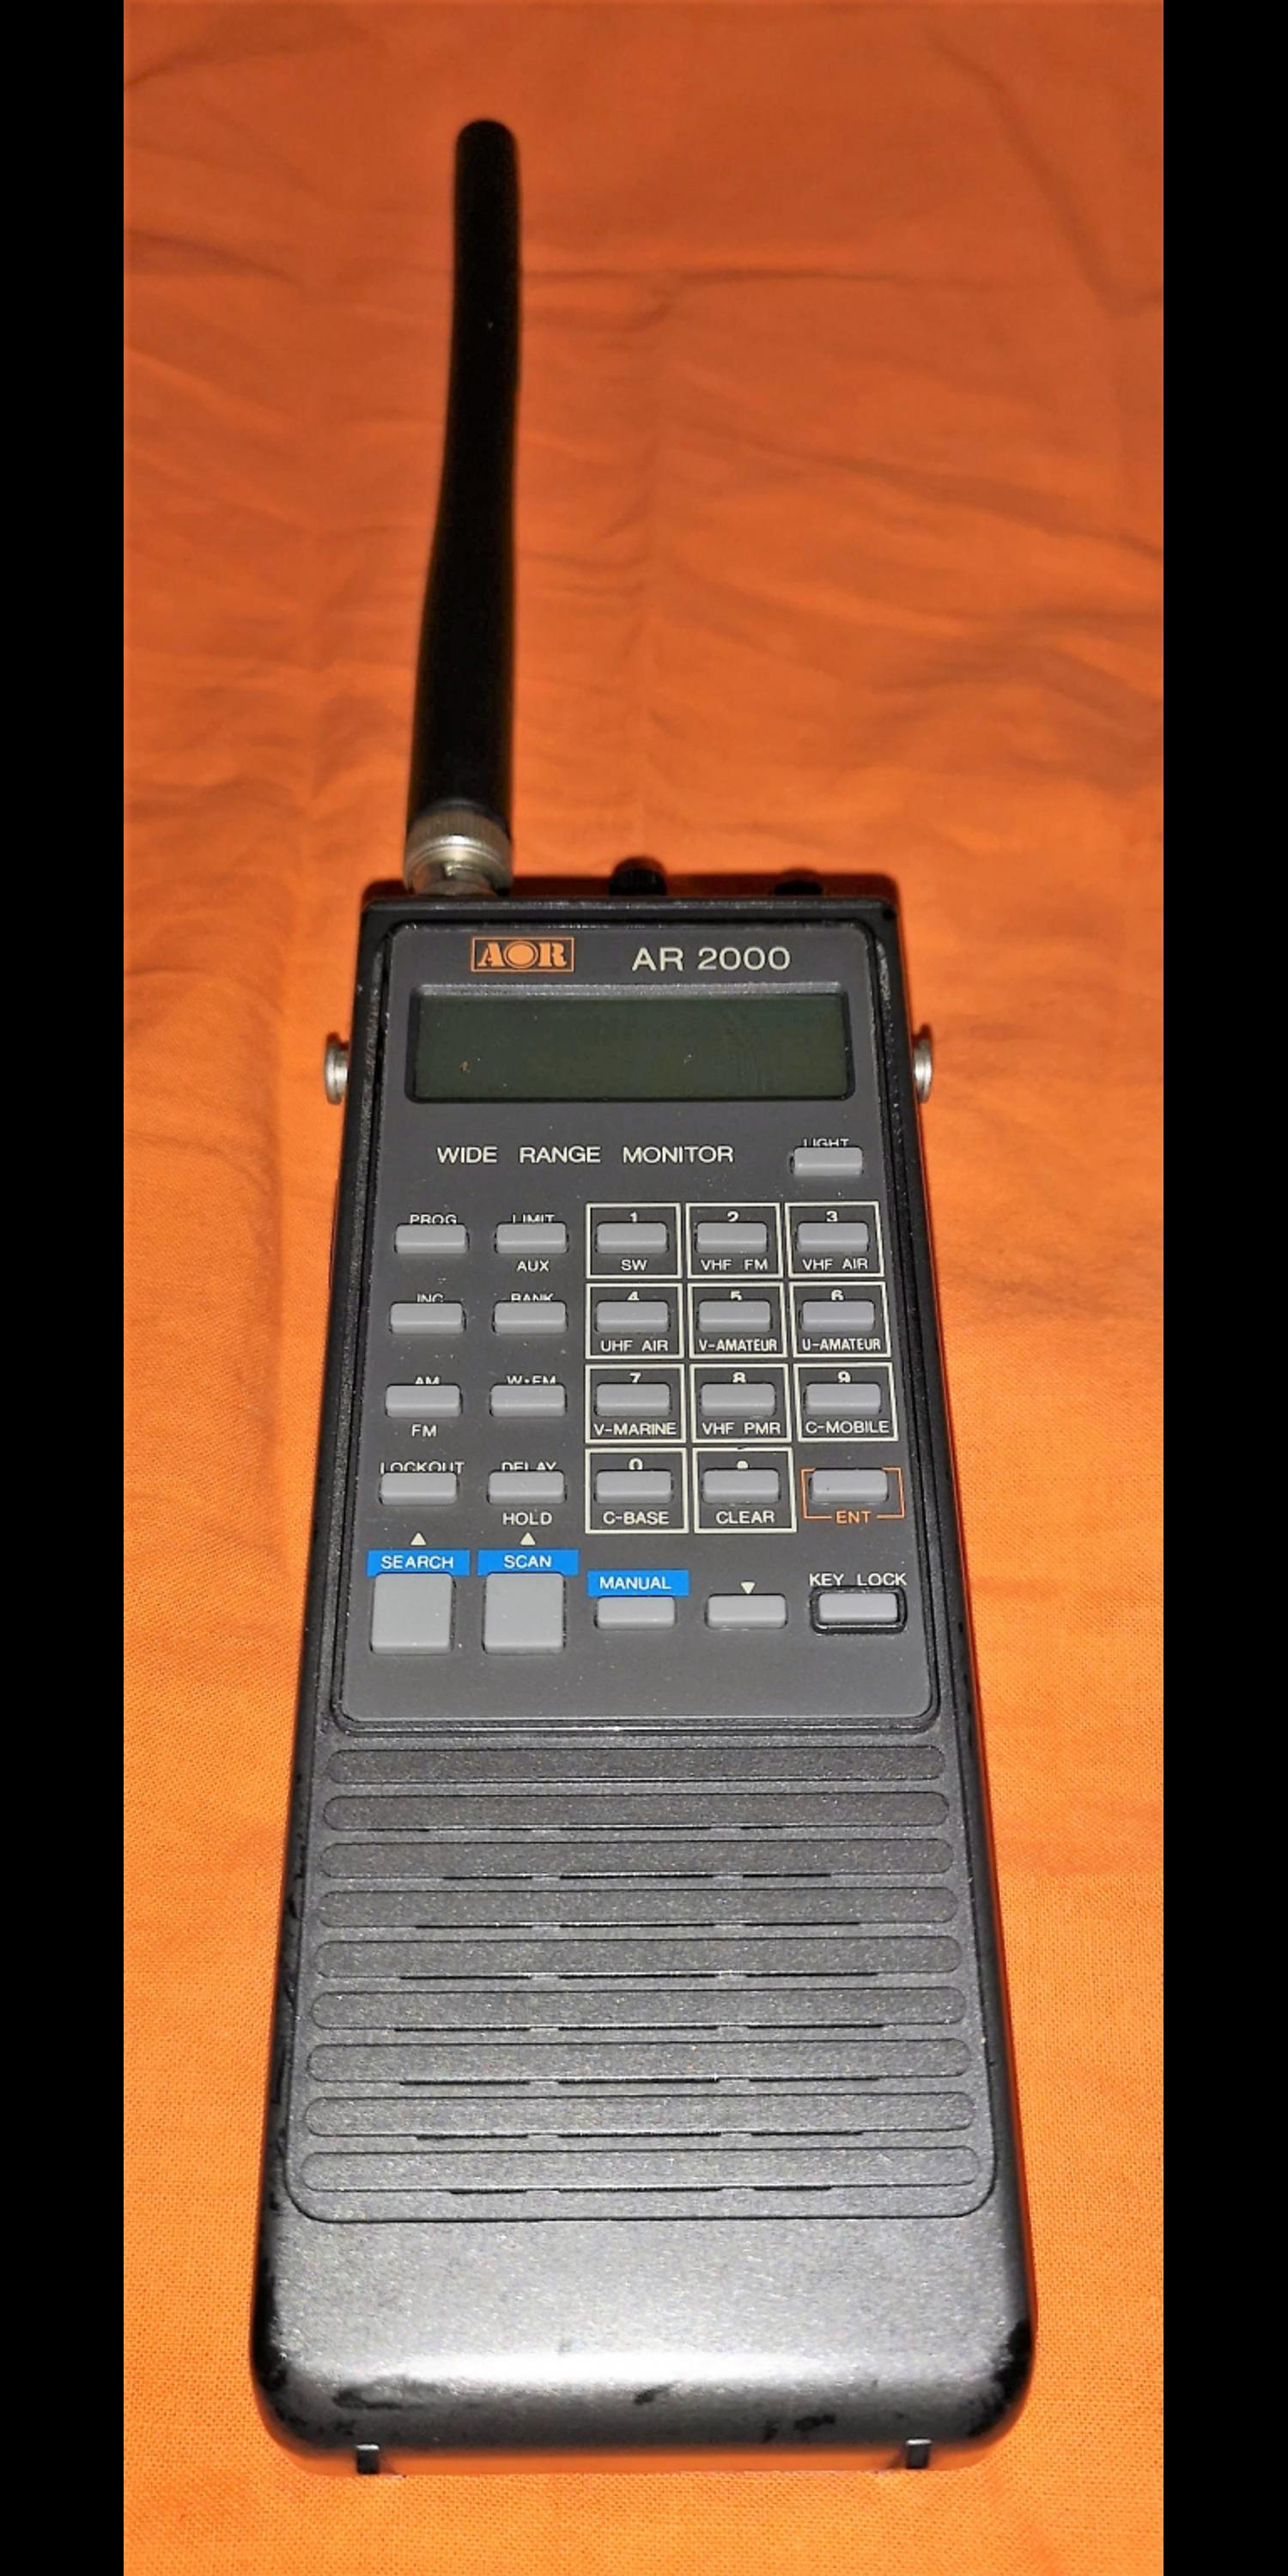 AOR AR-2000 Wide Range Monitor Hand Scanner in SW18